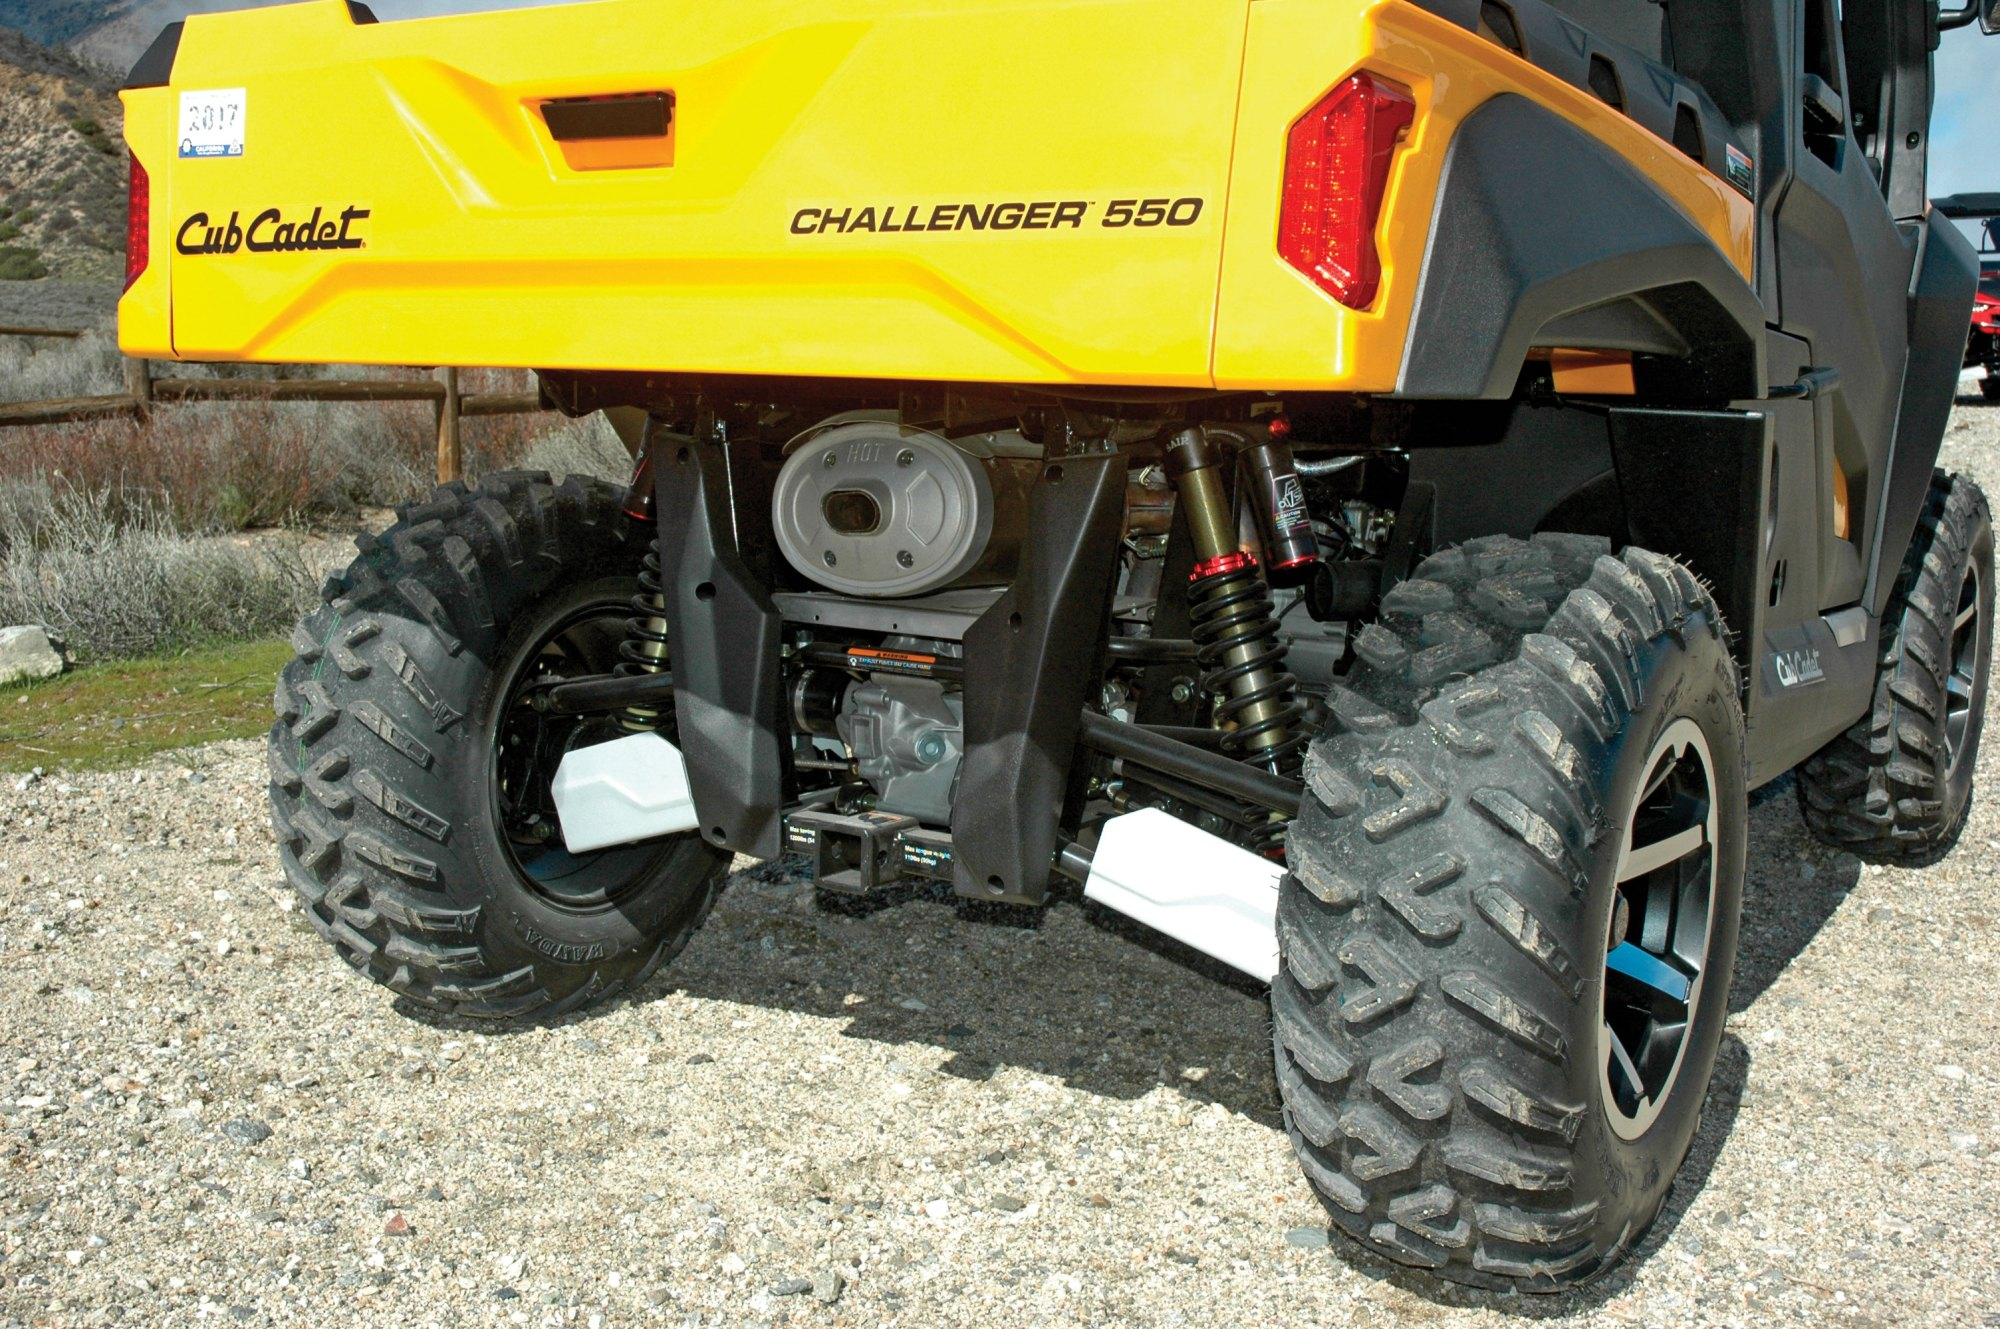 hight resolution of with its tilting bed and 2 inch hitch receiver the challenger is ready for work compression rebound and spring preload adjustable piggyback reservoir